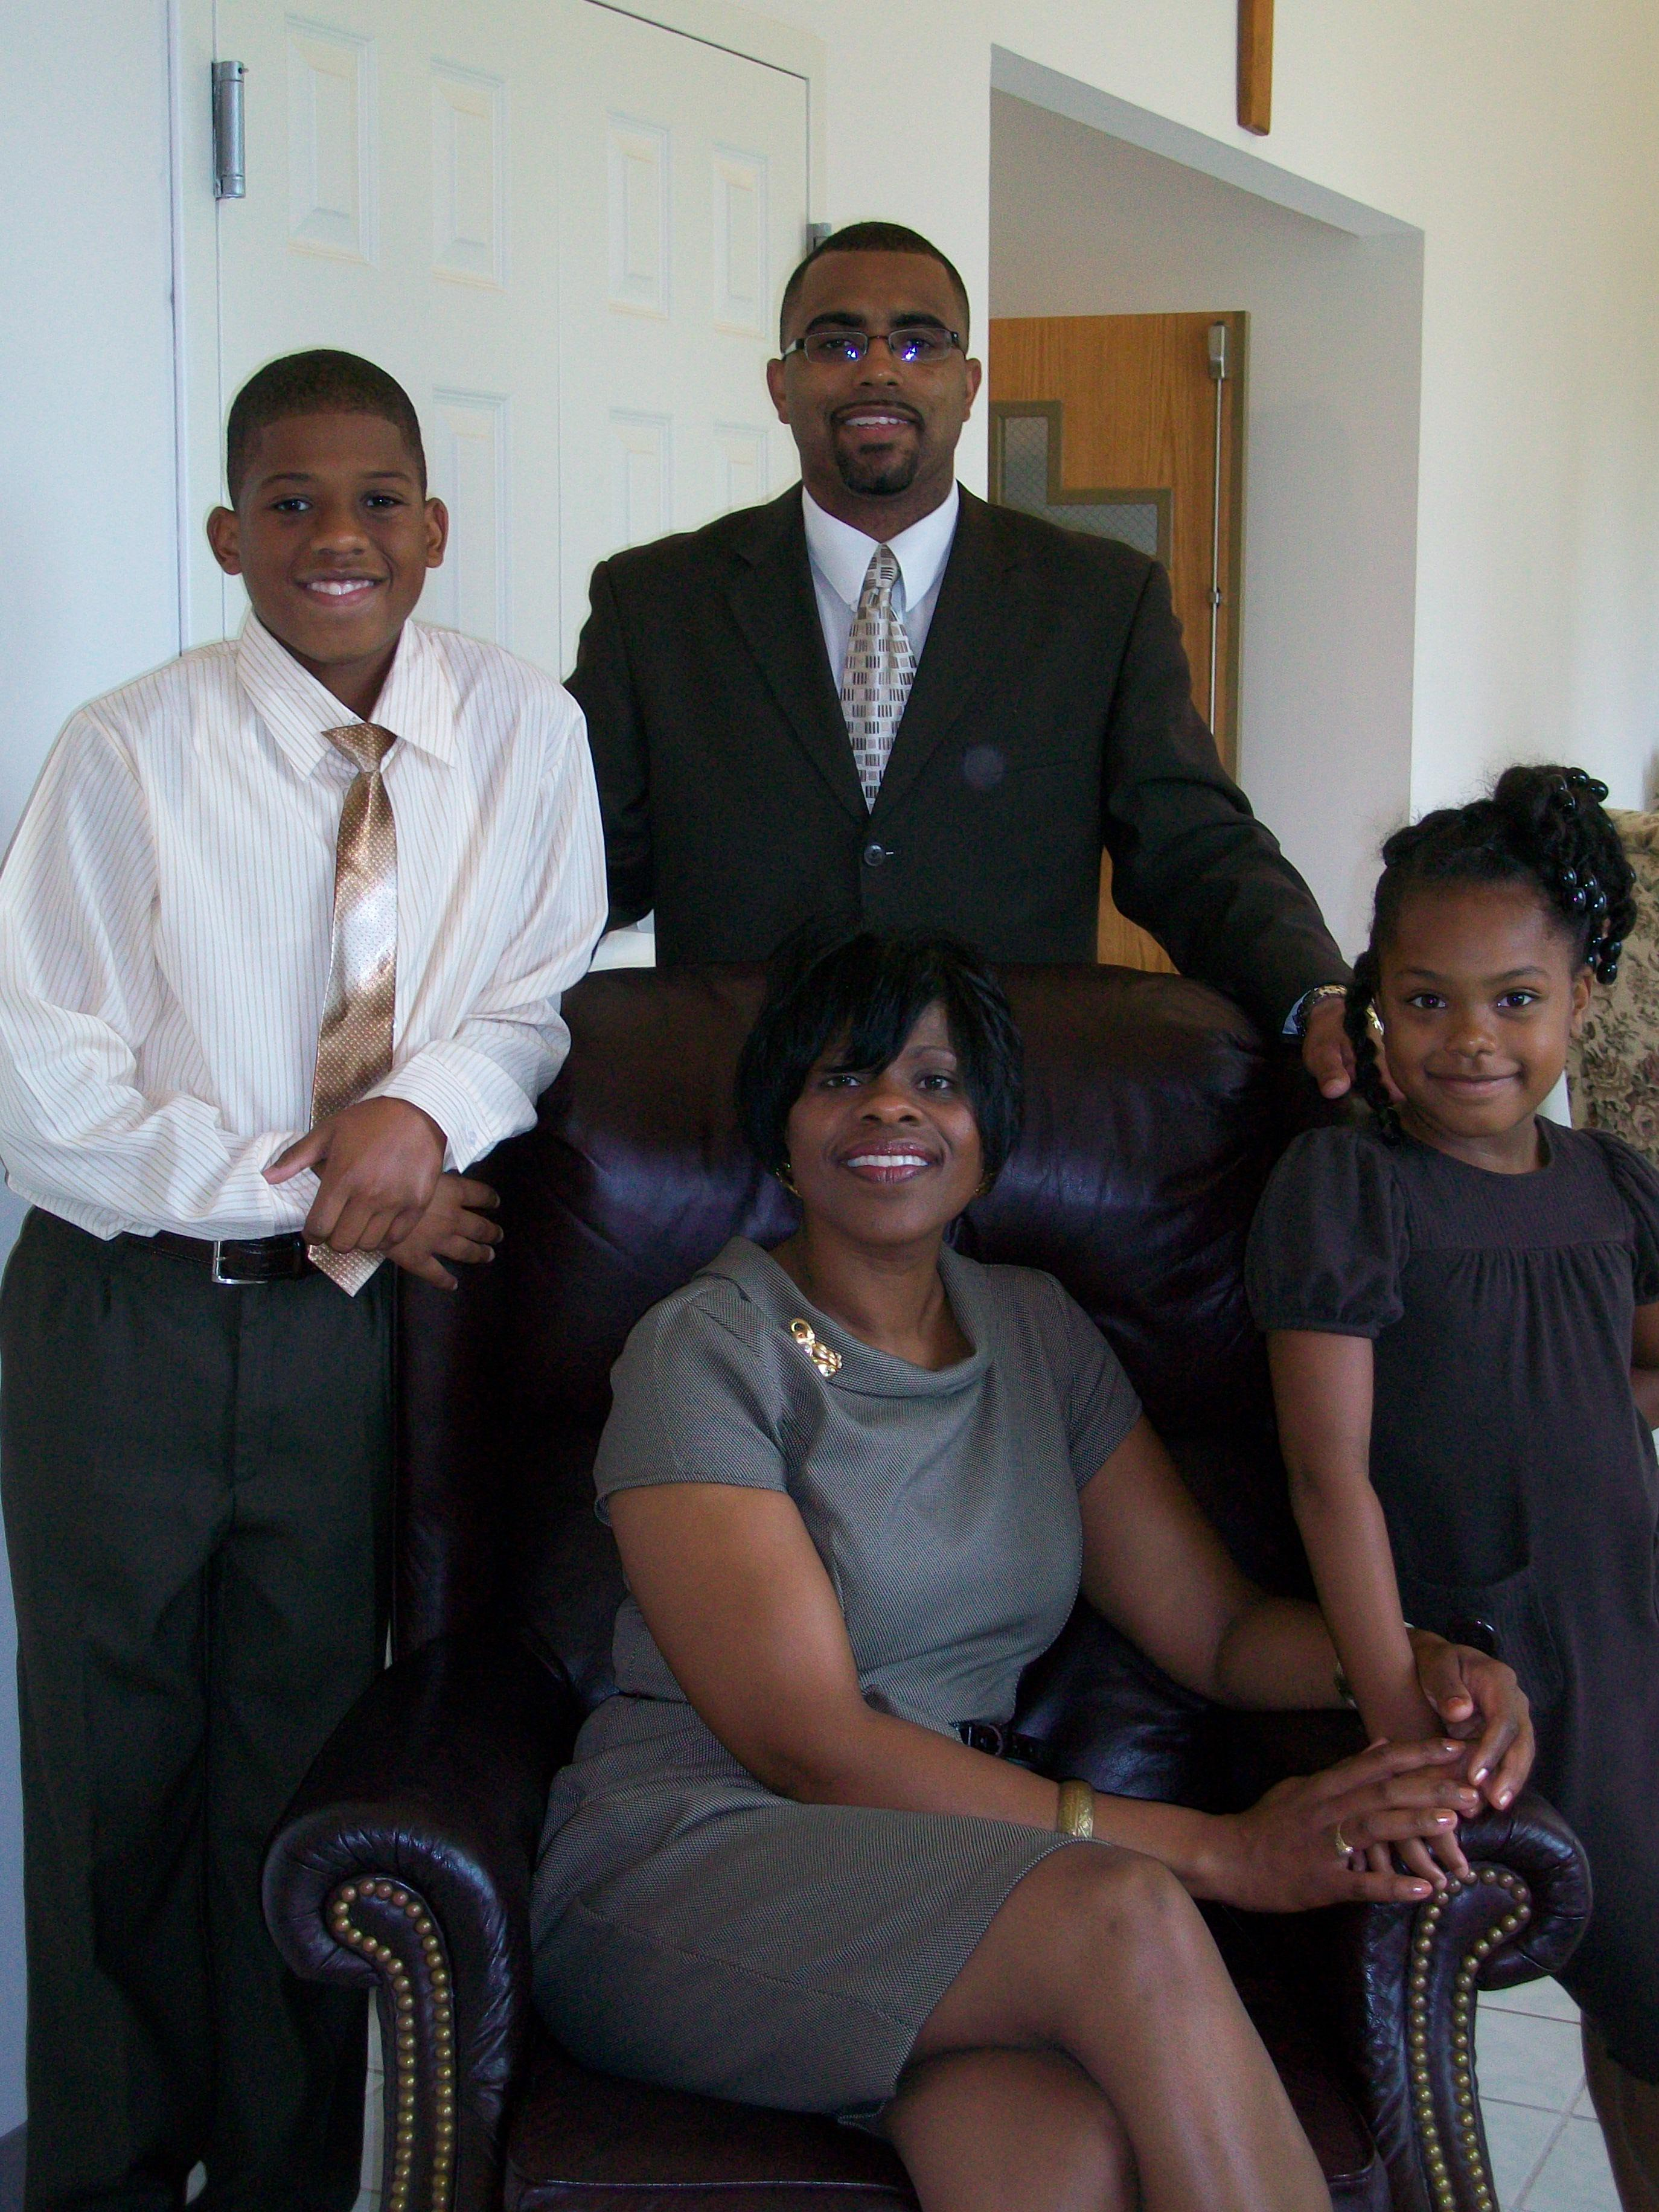 A picture of Martha Sales and family, she is a professor of Gender & Women's Studies